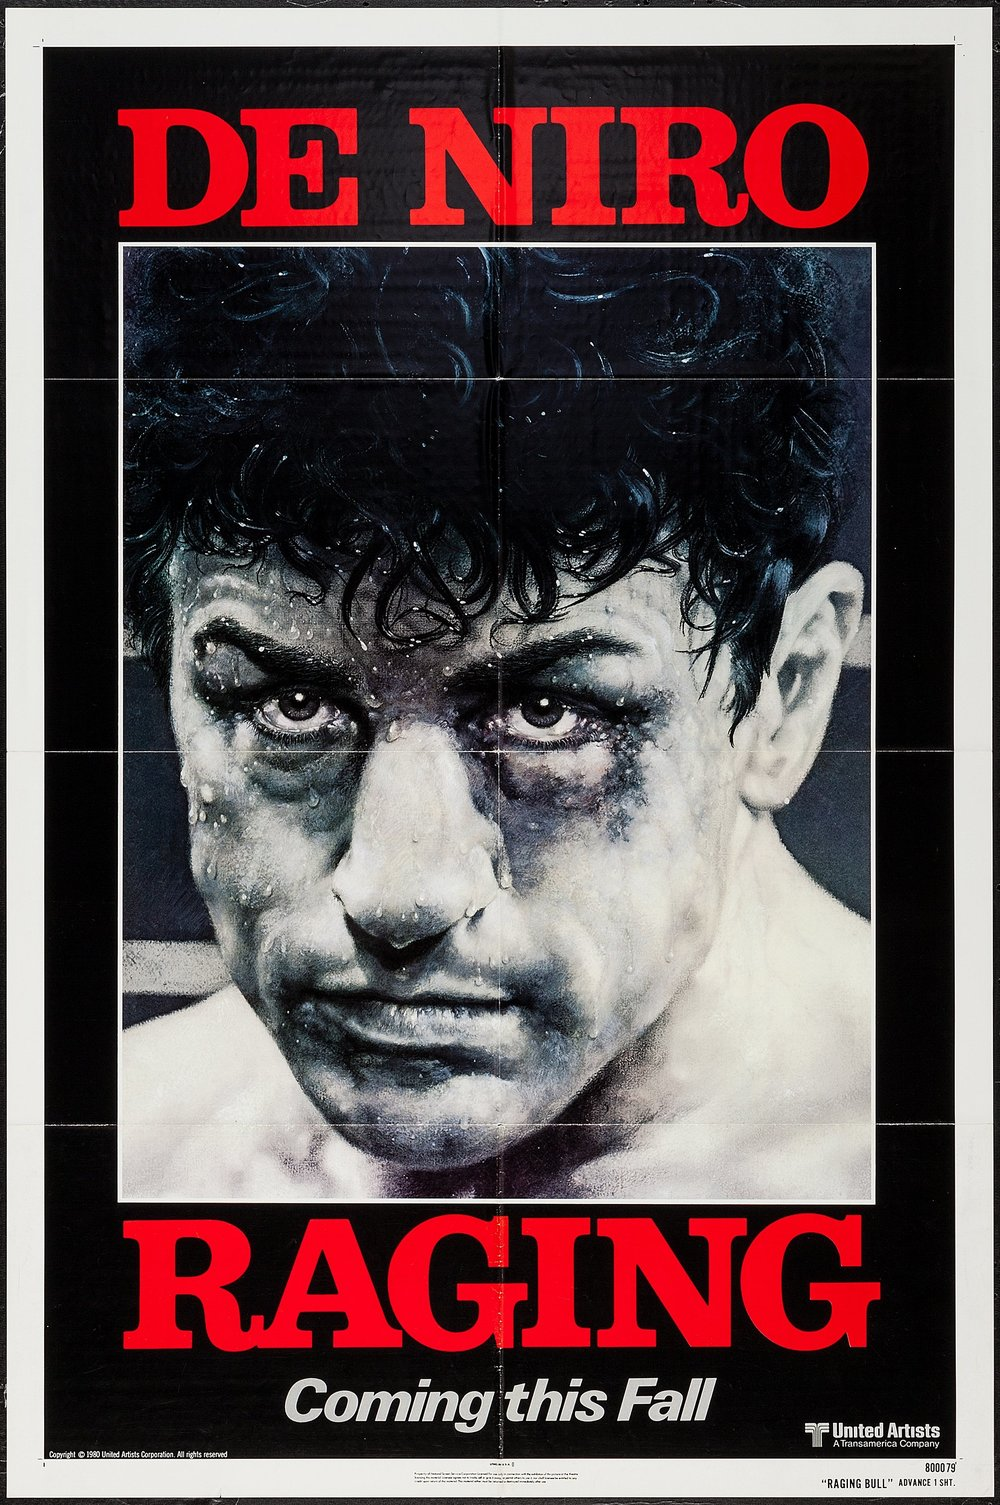 Julian Schnabel  on Martin Scorsese's  Raging Bull